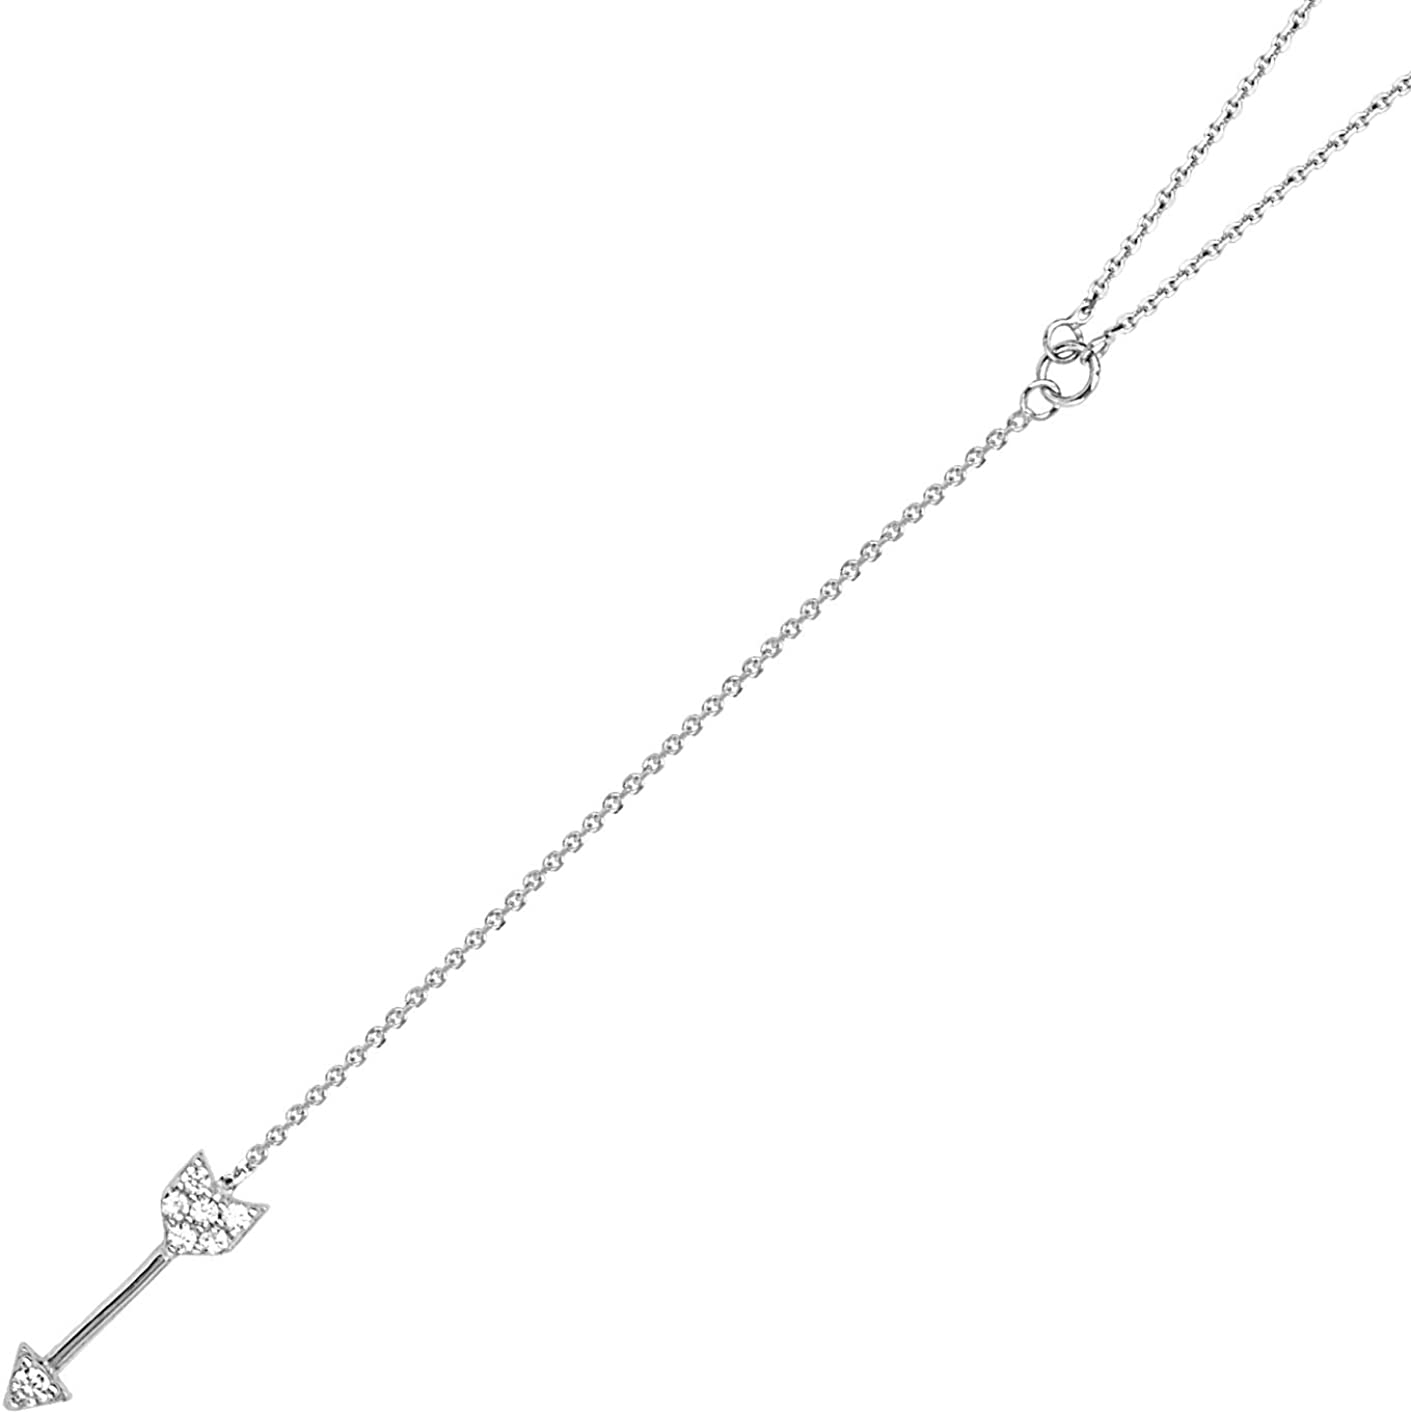 Y-style Lariat Arrow Necklace with Cubic Zirconia Adjustable Length 14k White Gold